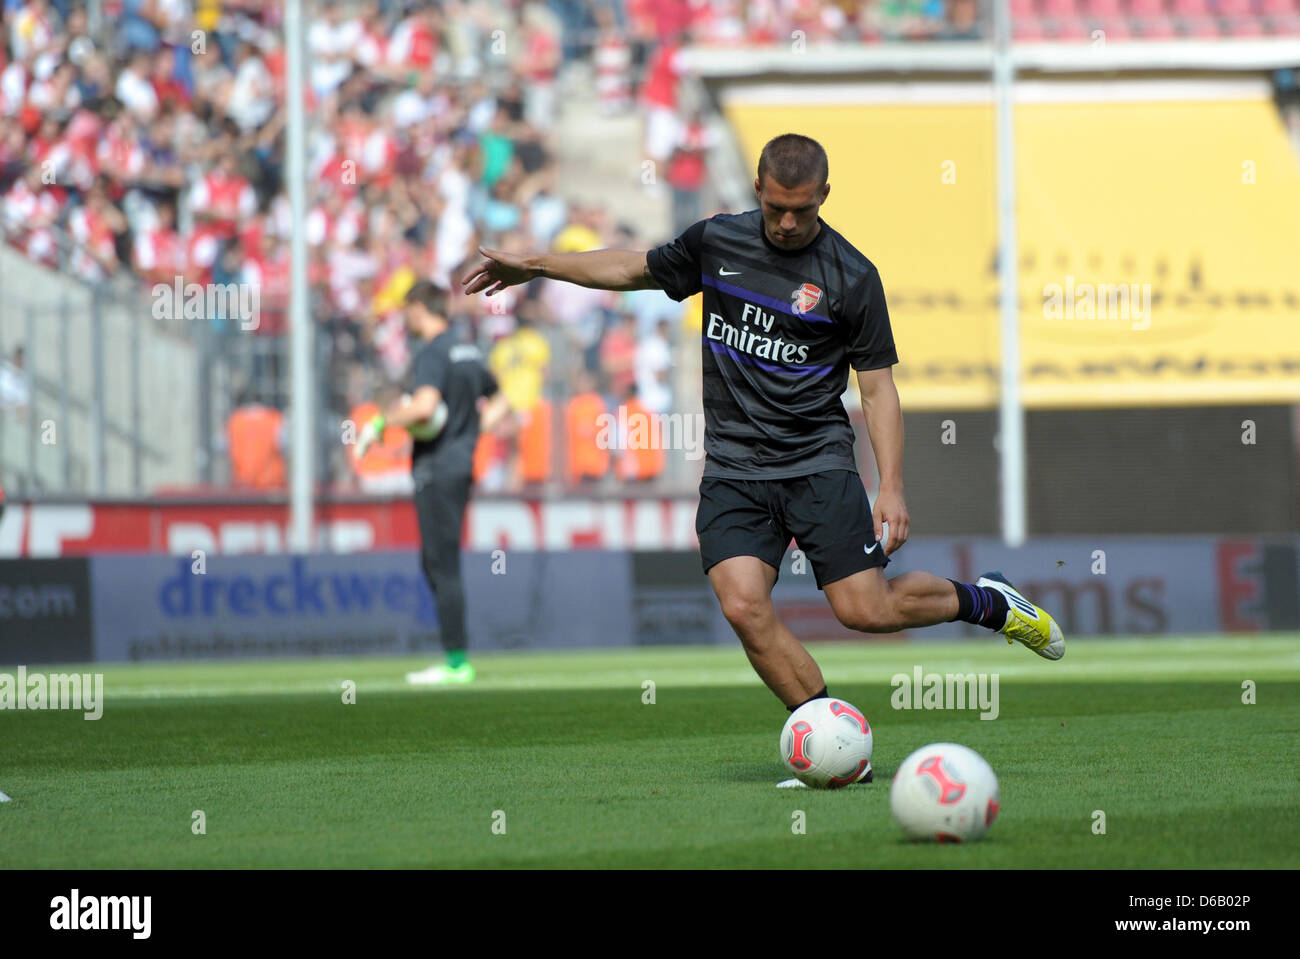 Arsenal's Lukas Podolski warms up before the soccer test match between 1. FC Cologne and FC Arsenal at the RheinEnergieStadion - Stock Image